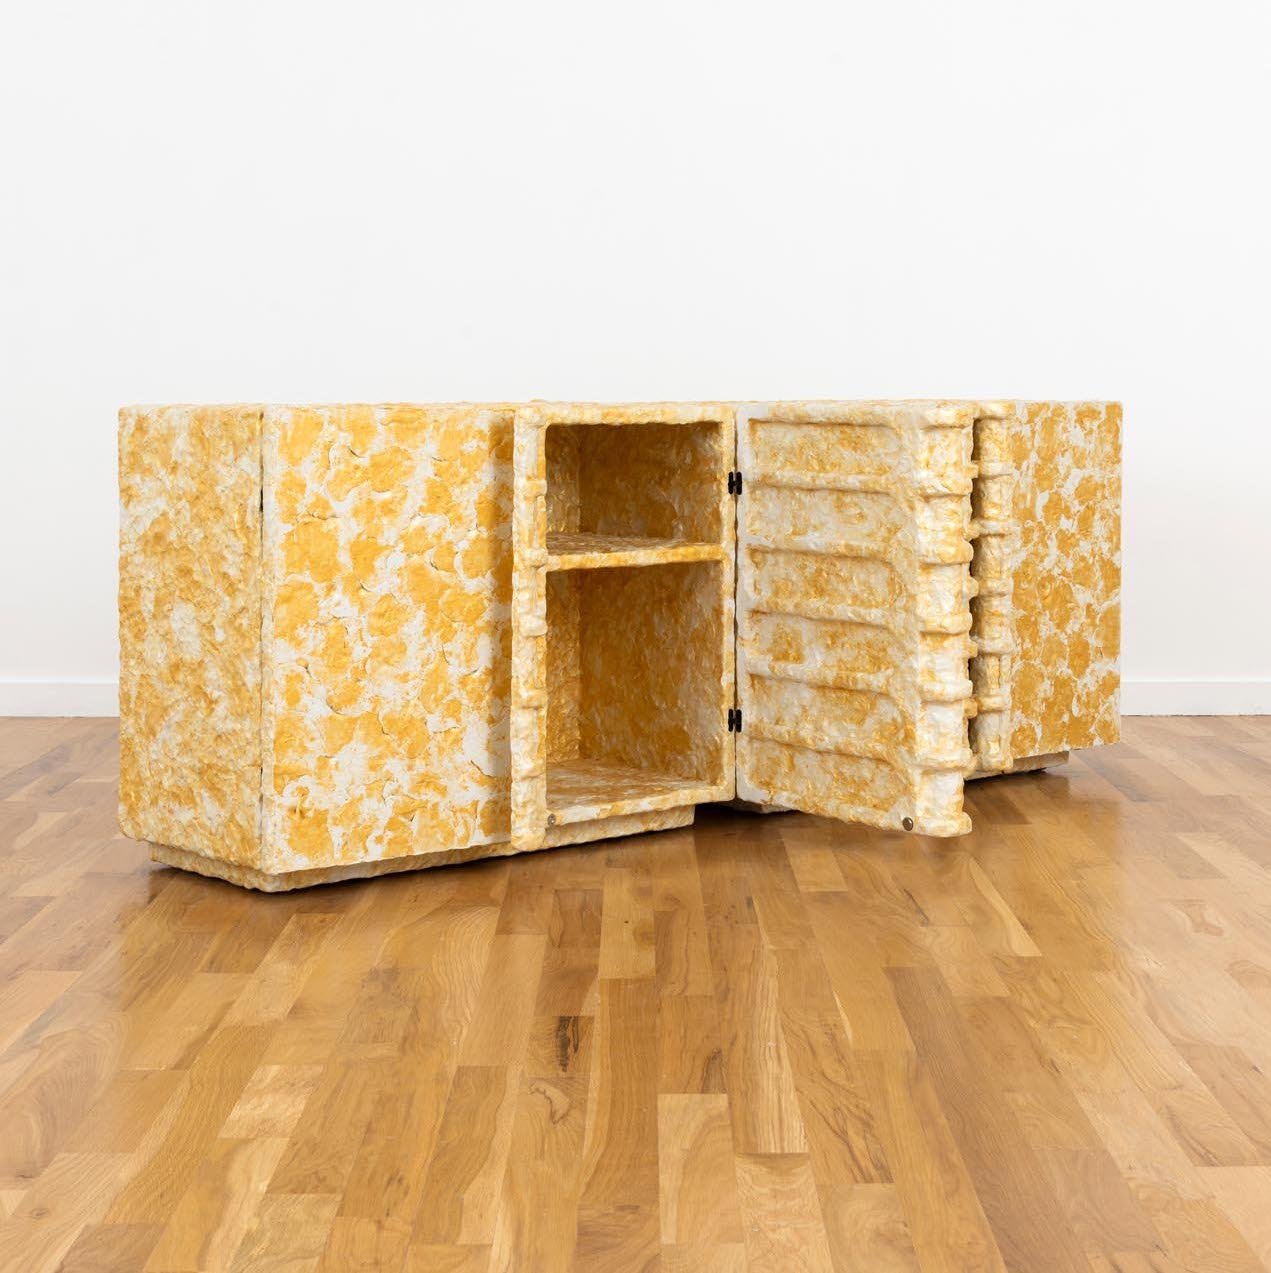 Shimmer Cabinet by Ross Hansen, a one-of-kind made of ceramic epoxy and wood. Photo © Volume Gallery